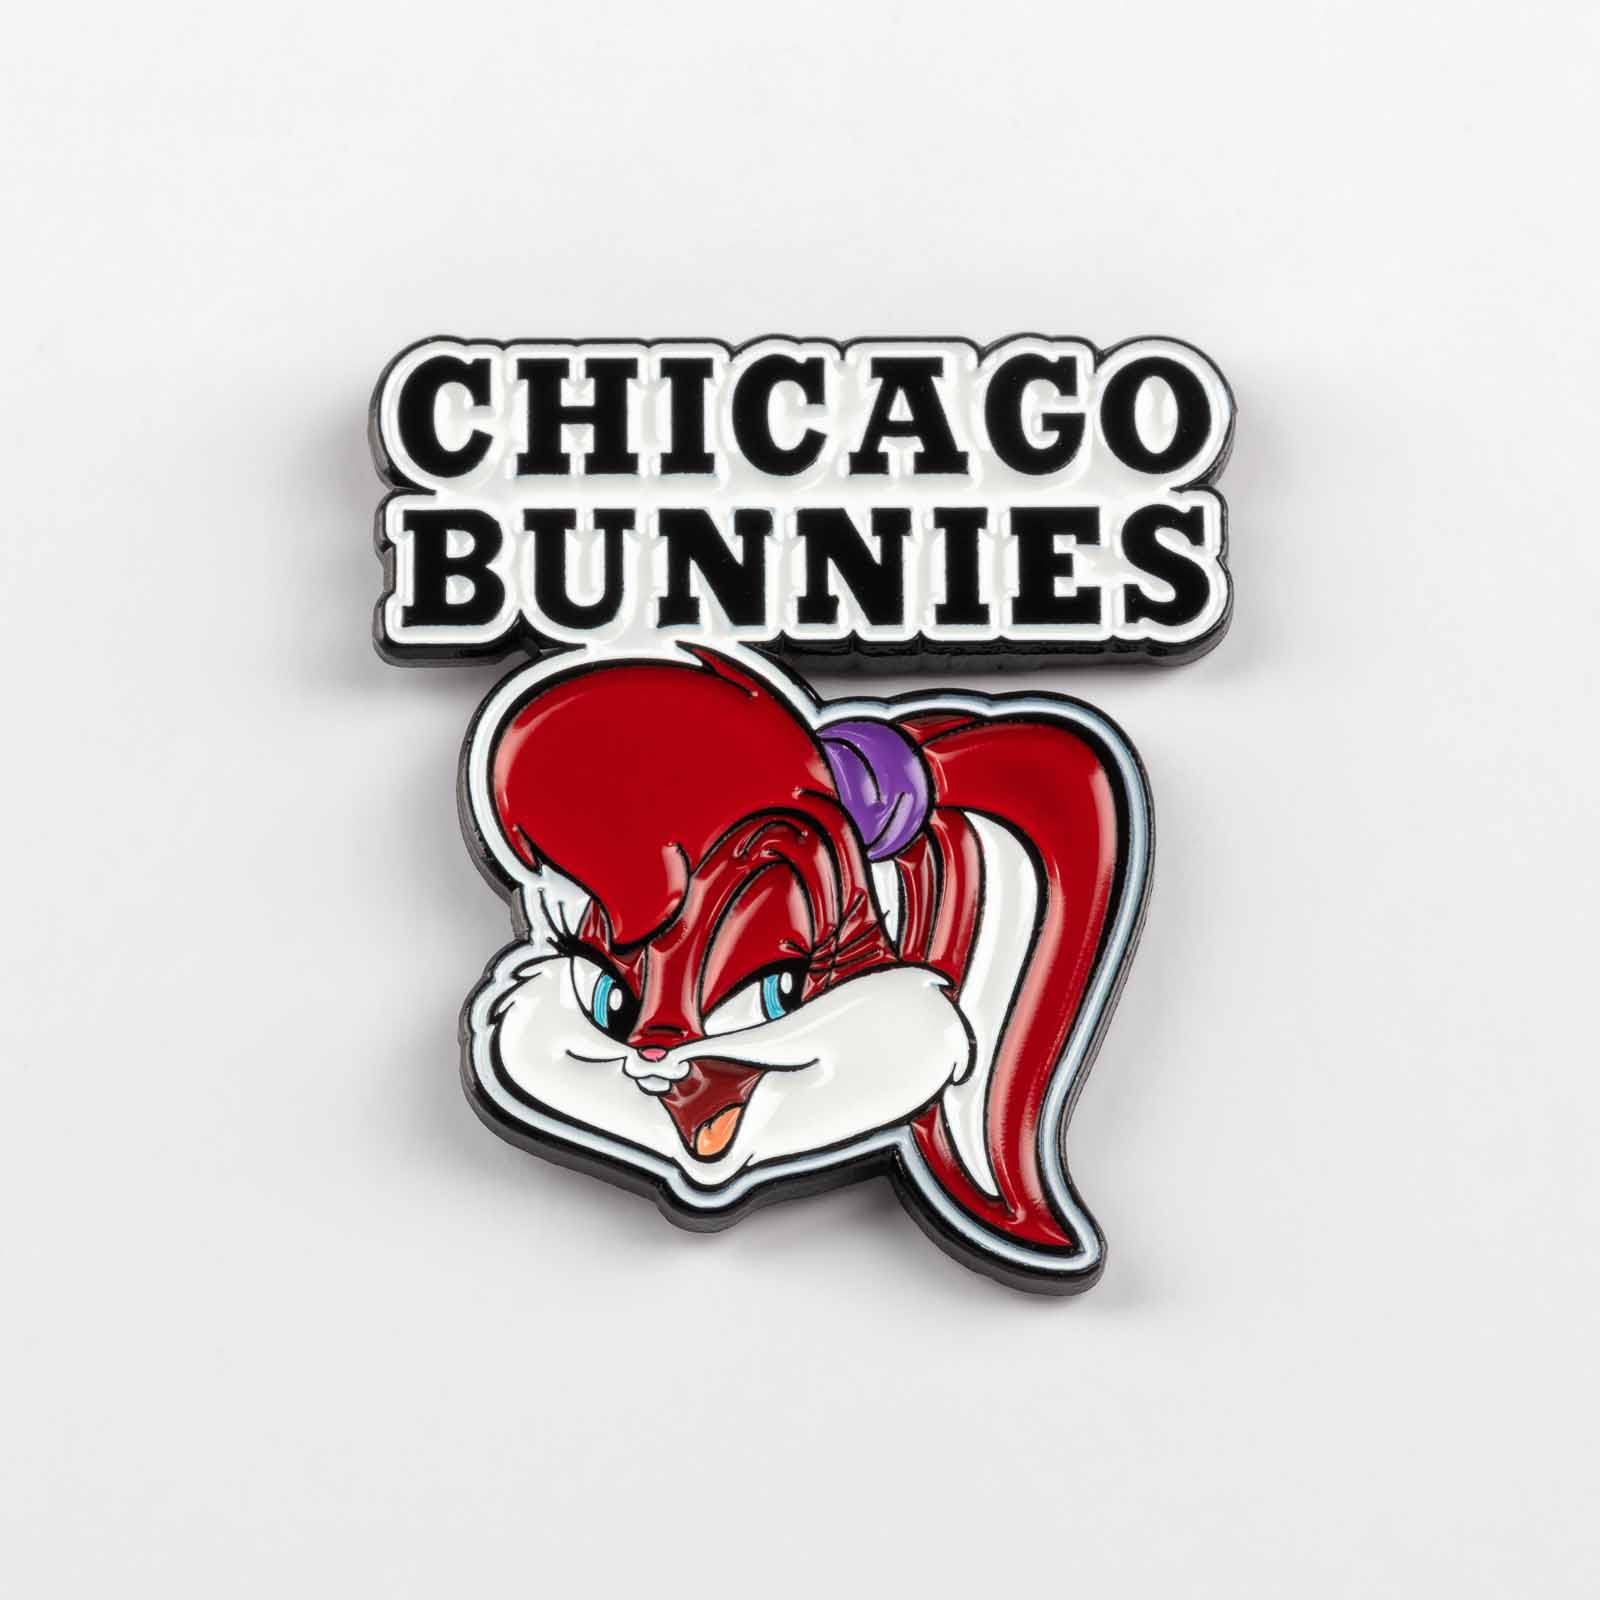 Pins 493 Chicago Bunnies product photography